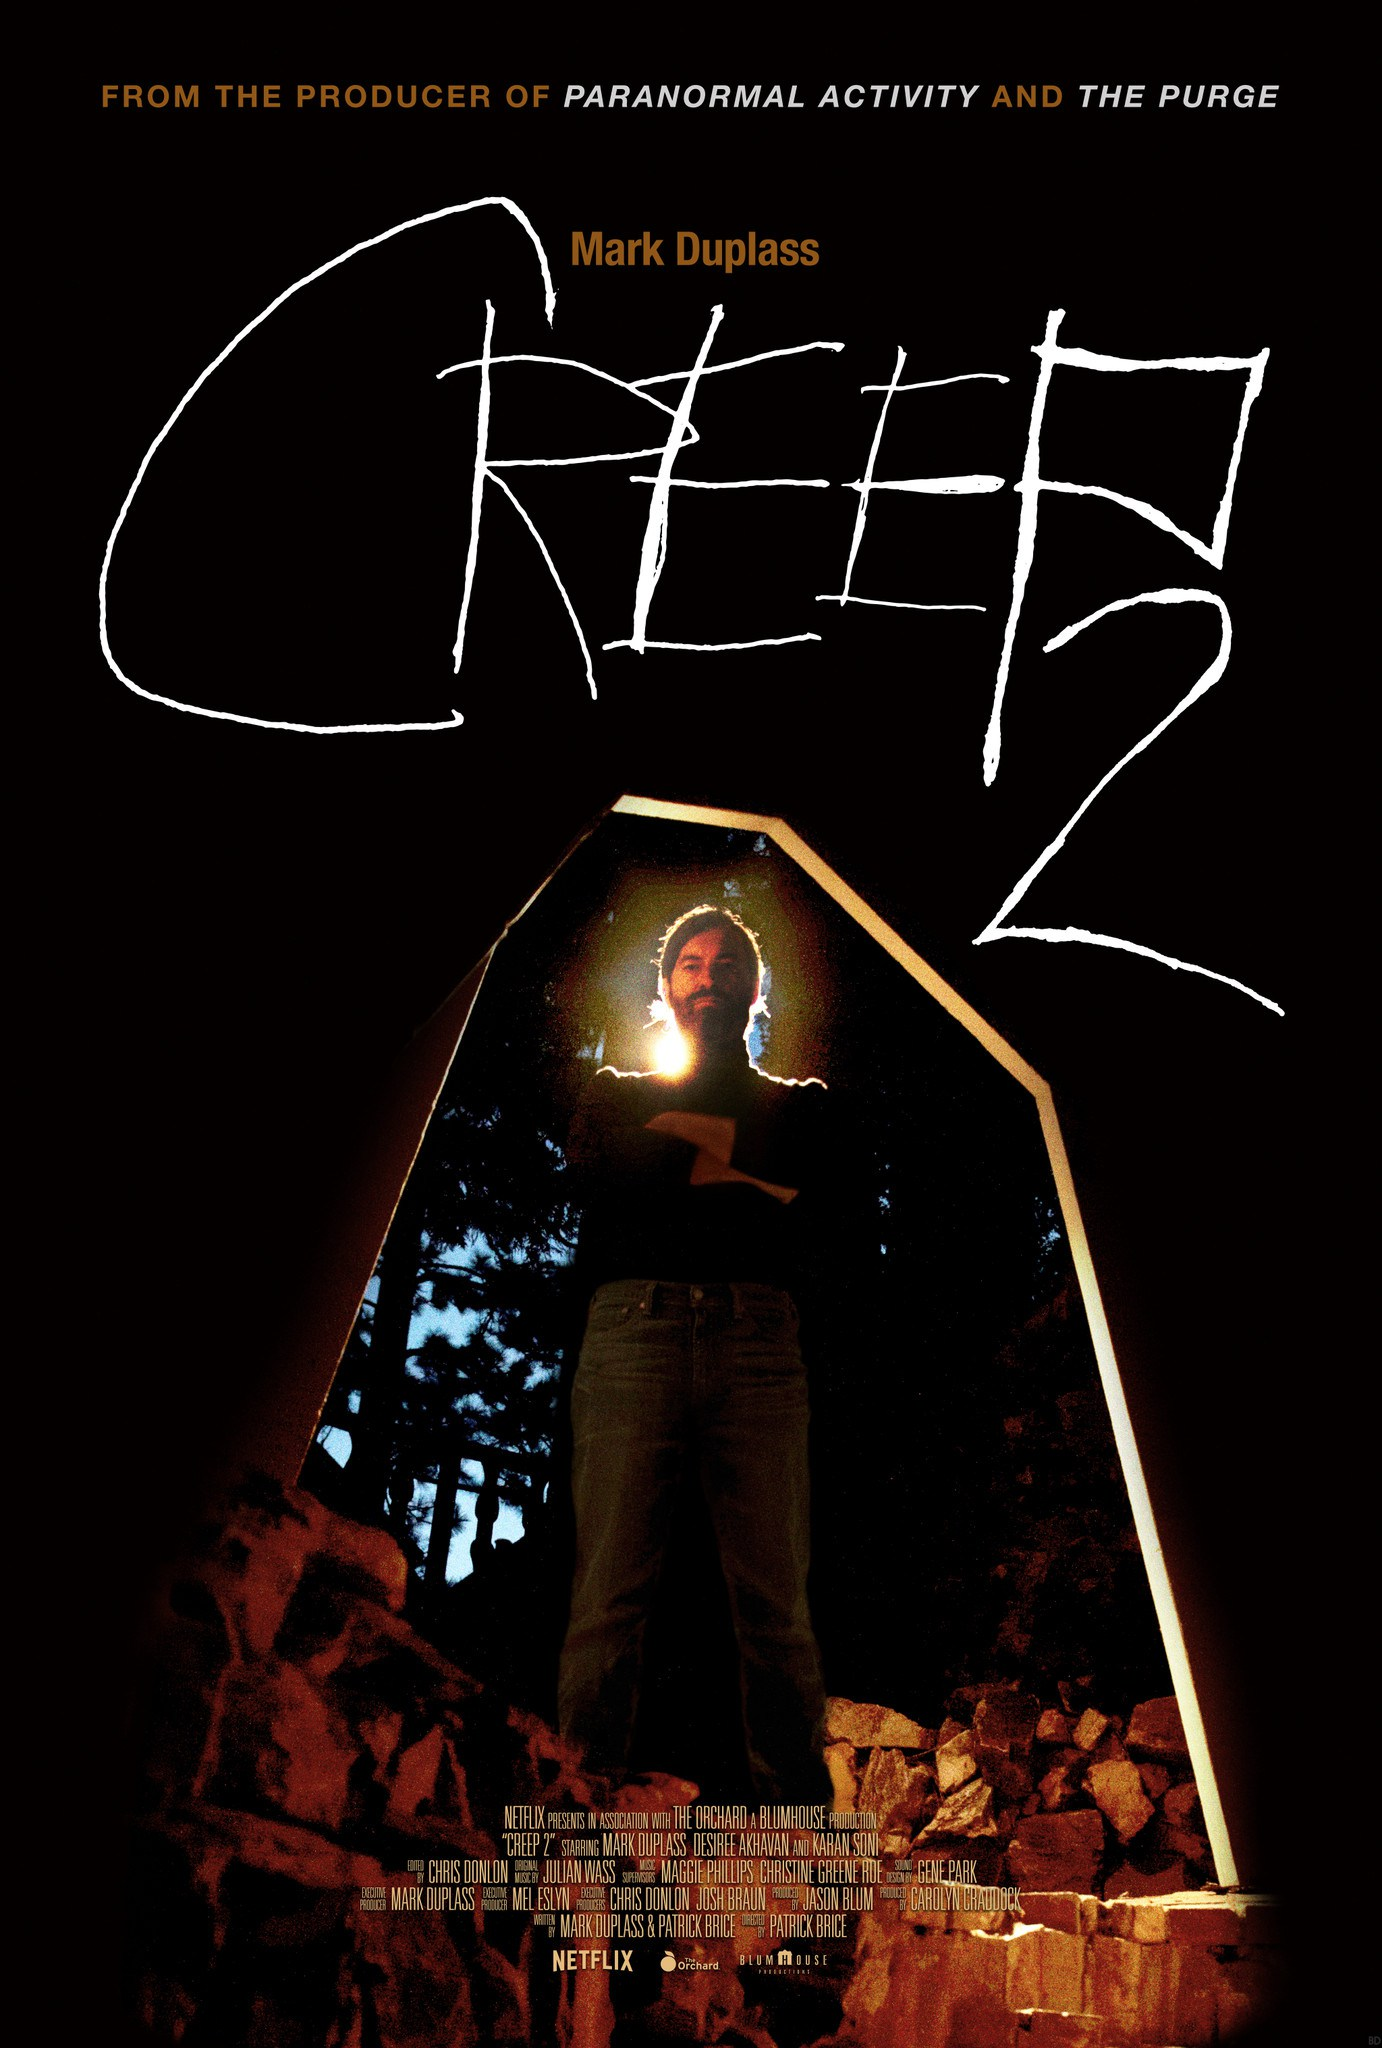 Creep 2 film review: Mark Duplass' sinister weirdo is back for more